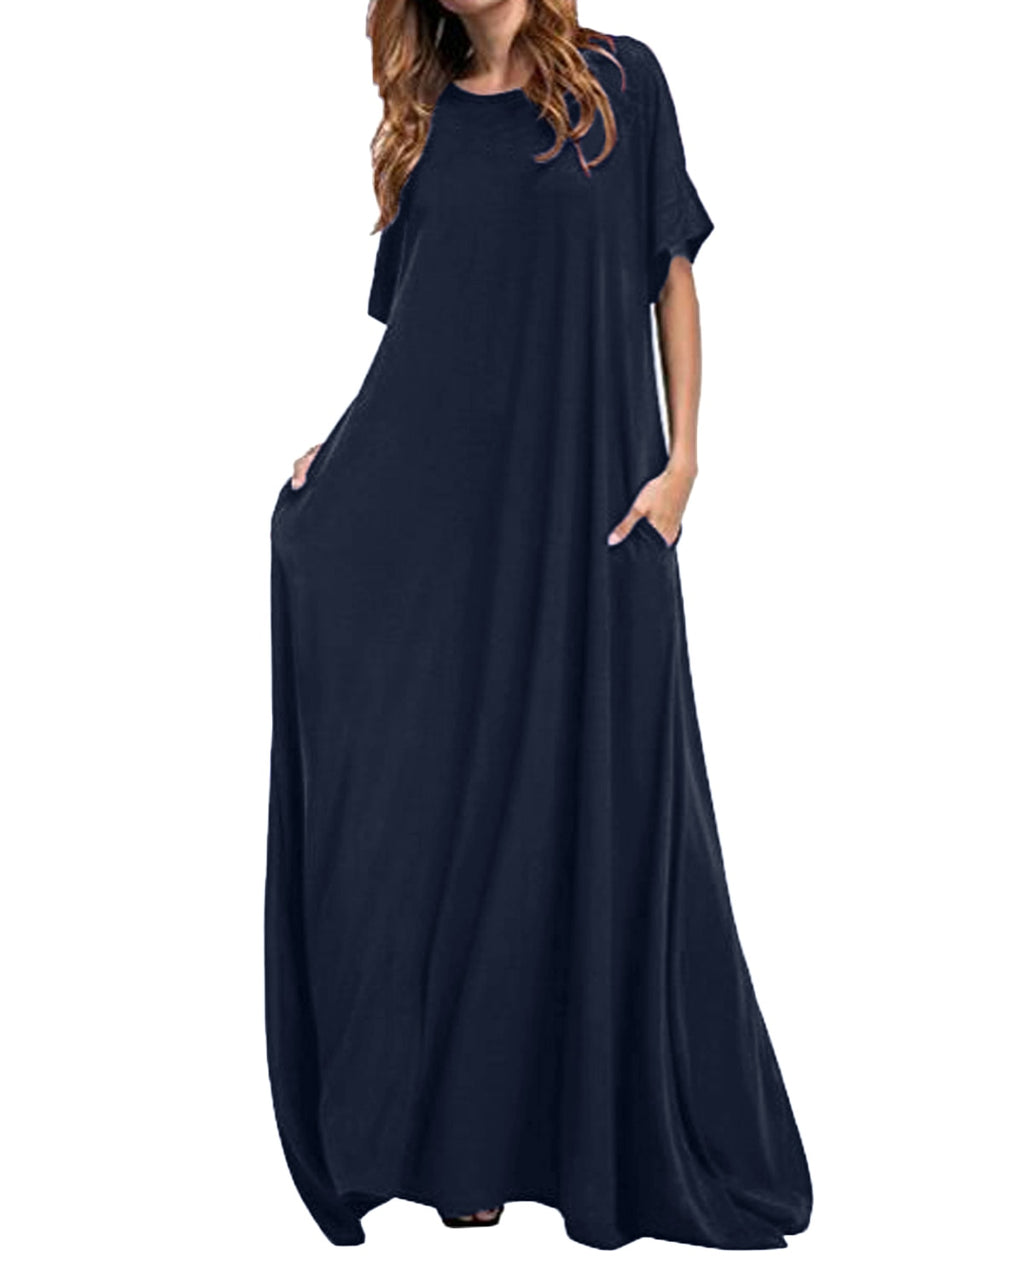 Women Half Sleeve Solid Maxi Dress